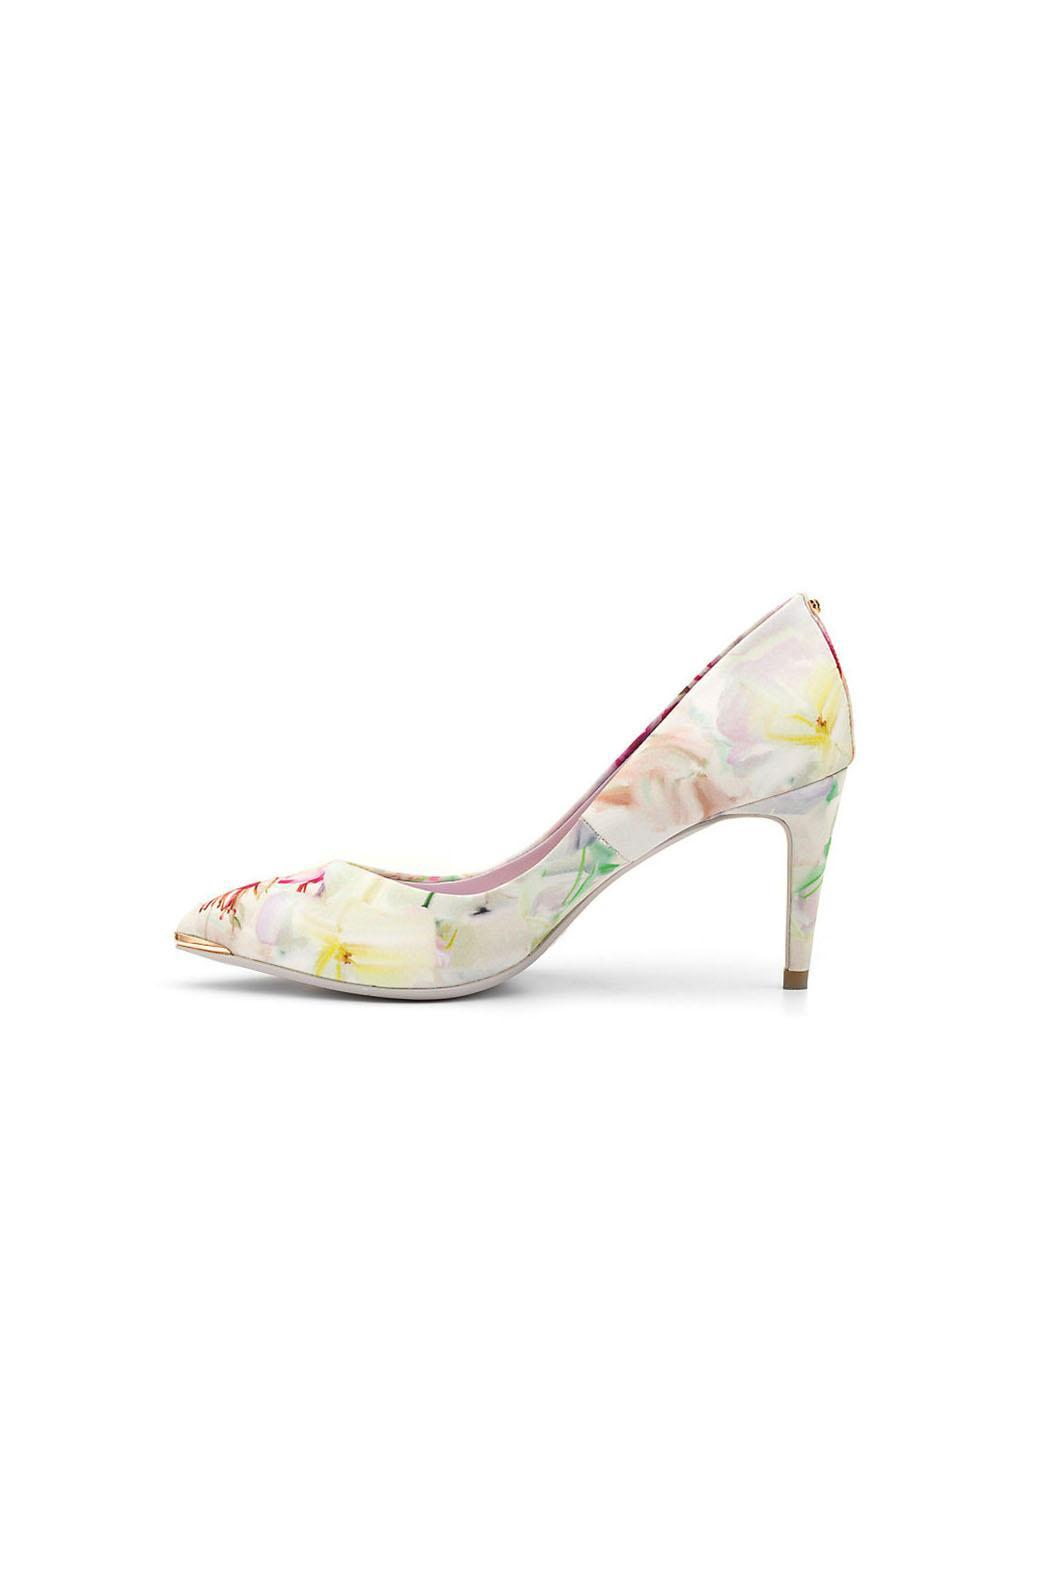 Ted Baker London Charmesa Hanging Garden Heel from Alexandria by